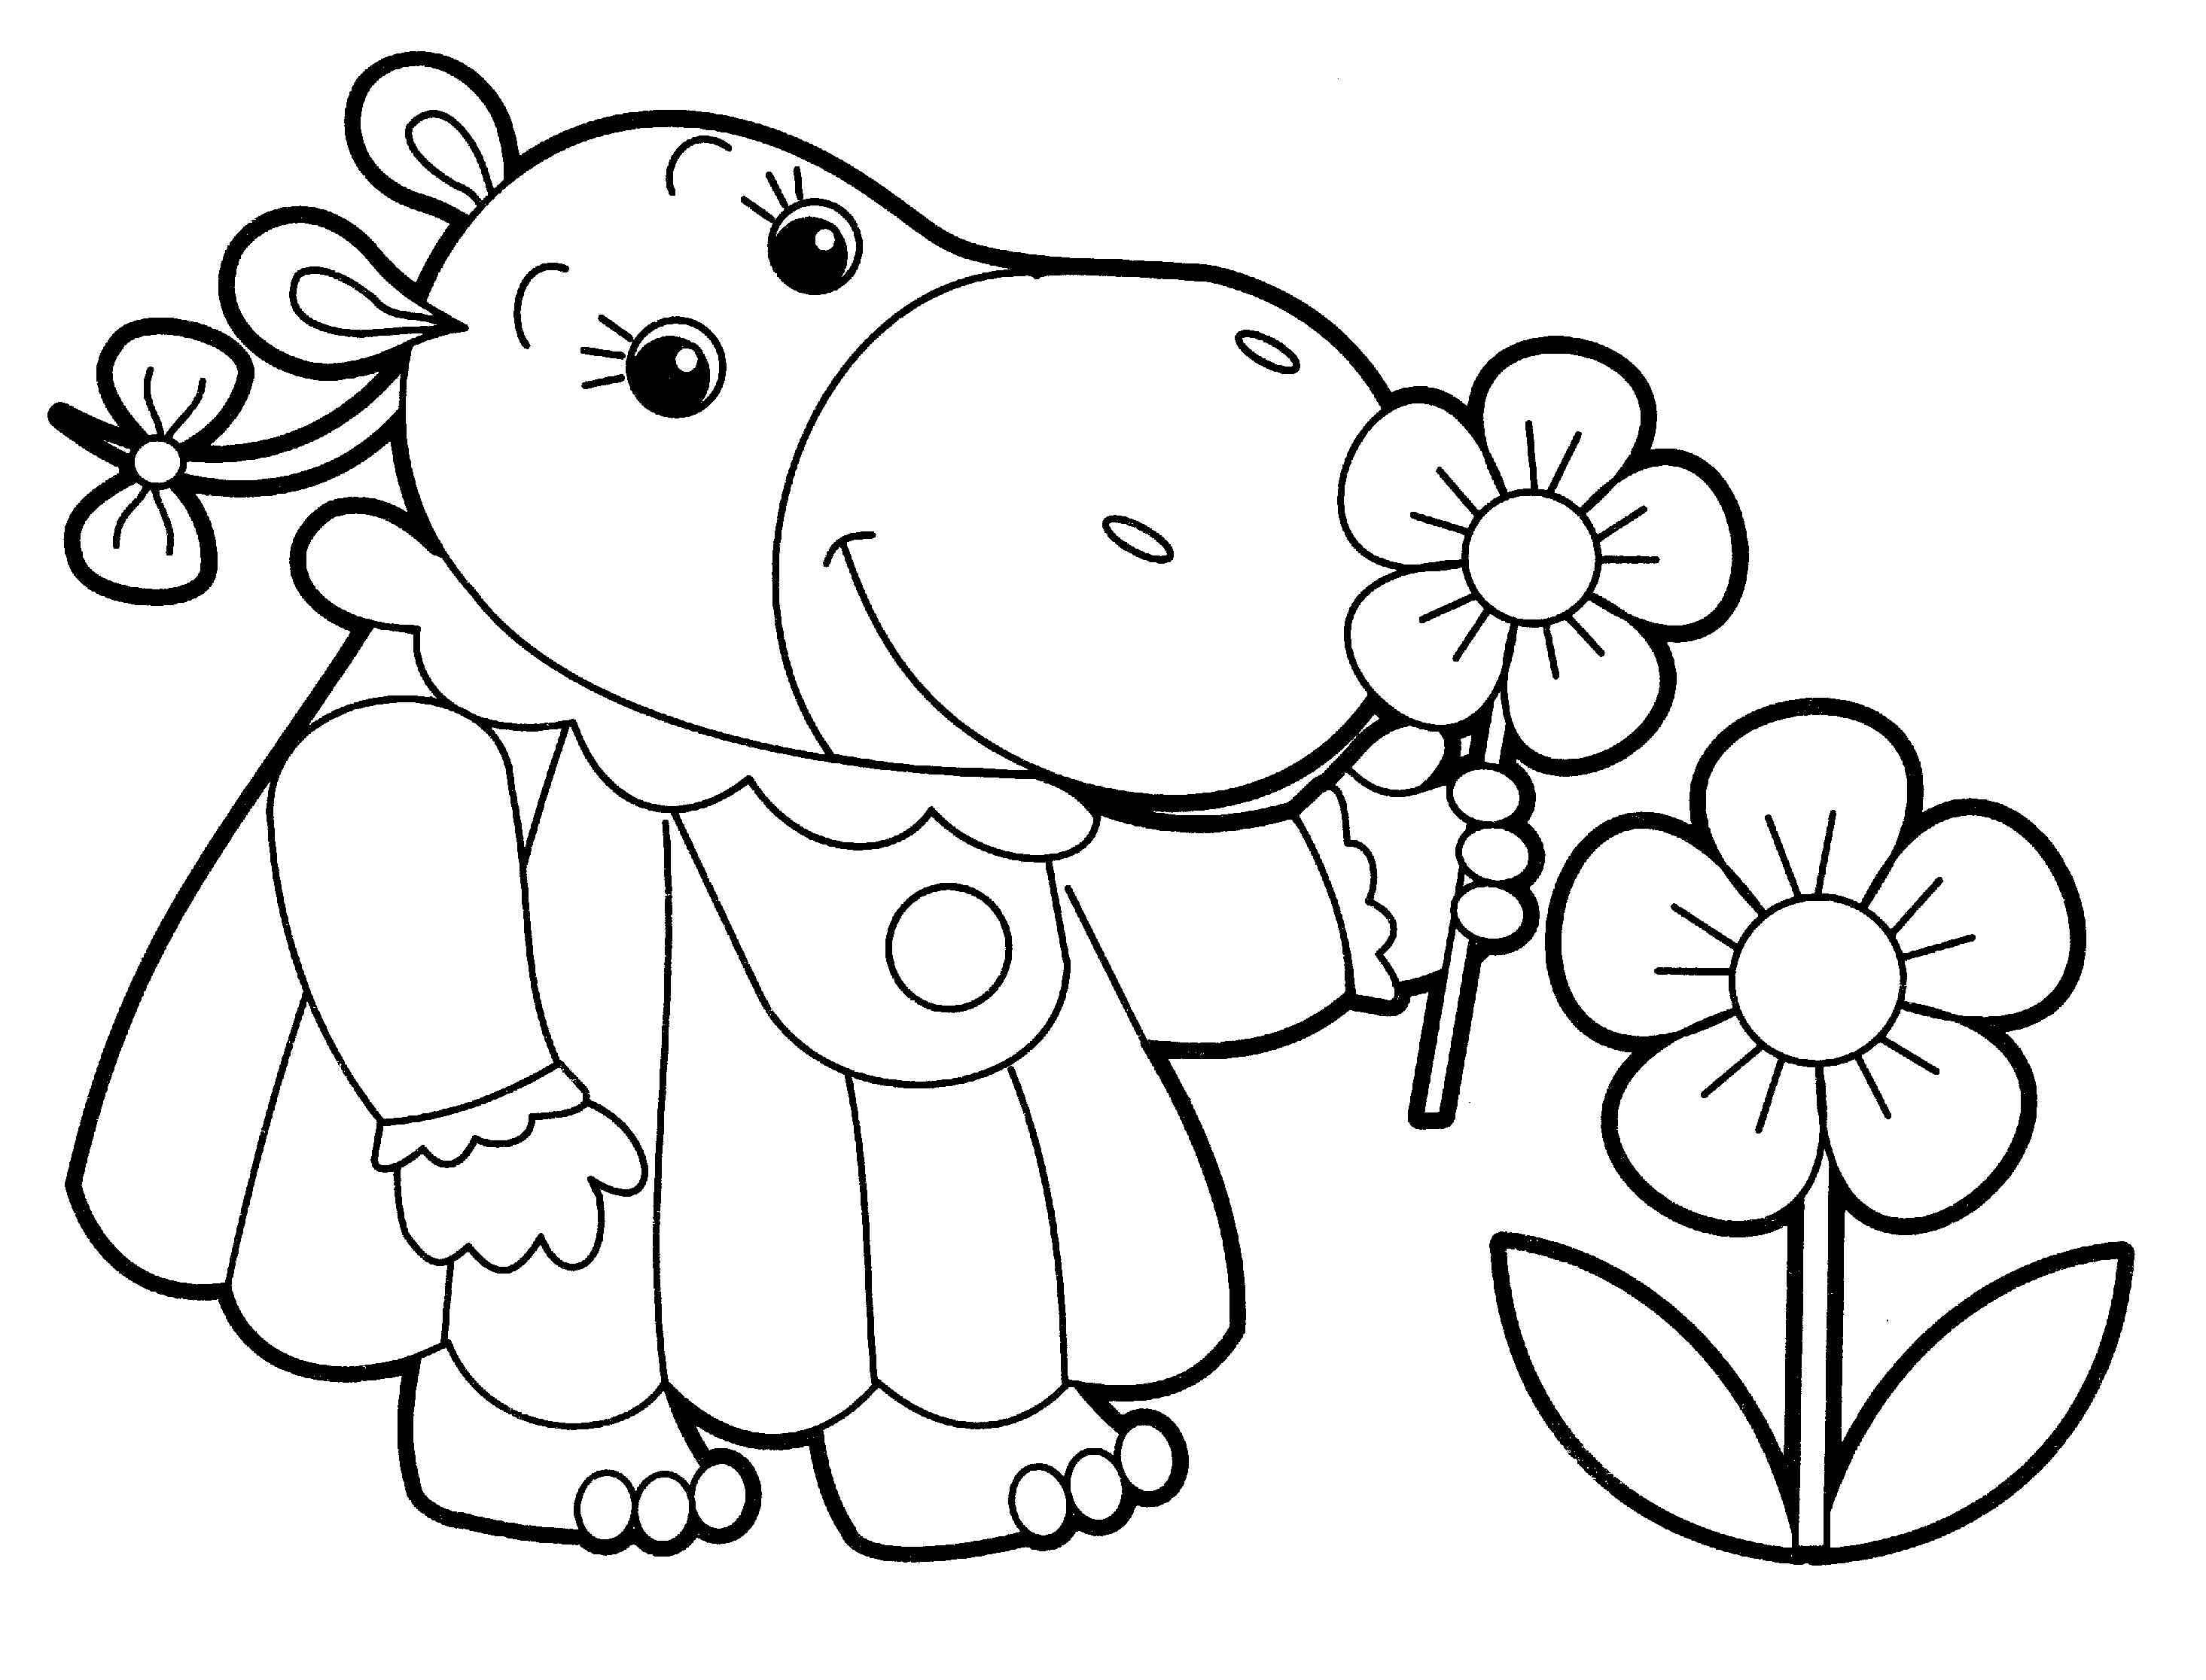 Lol Surprise Doll Coloring Pages At Getcolorings